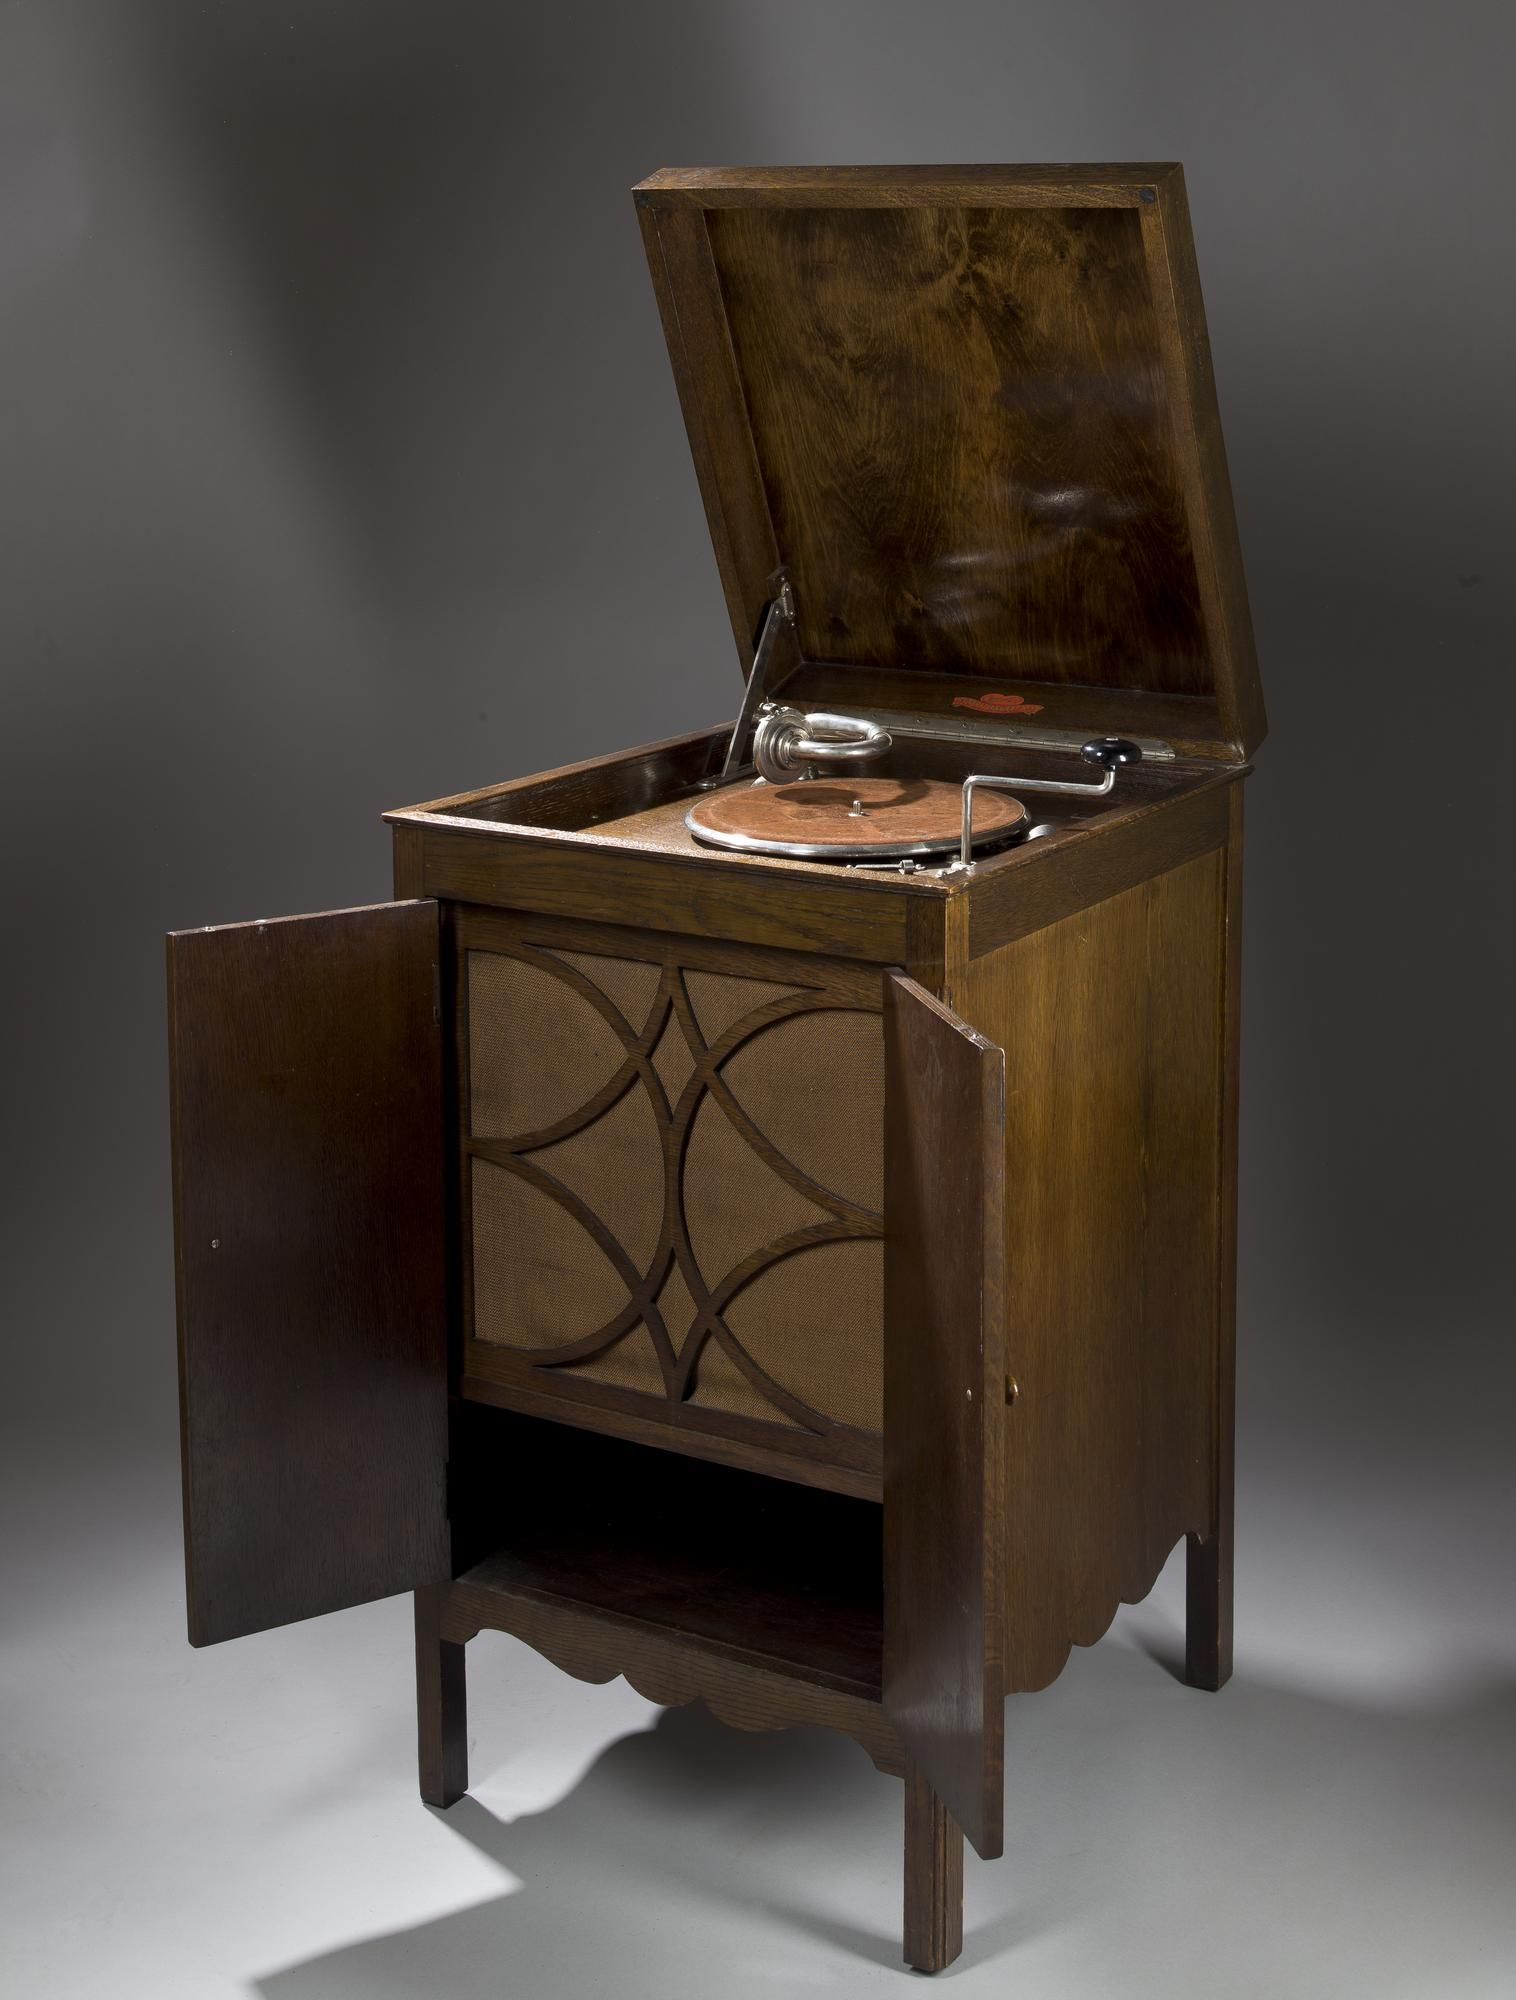 Wood Light Fittings Multigram Cabinet Gramophone Made By The Cowey Engineering